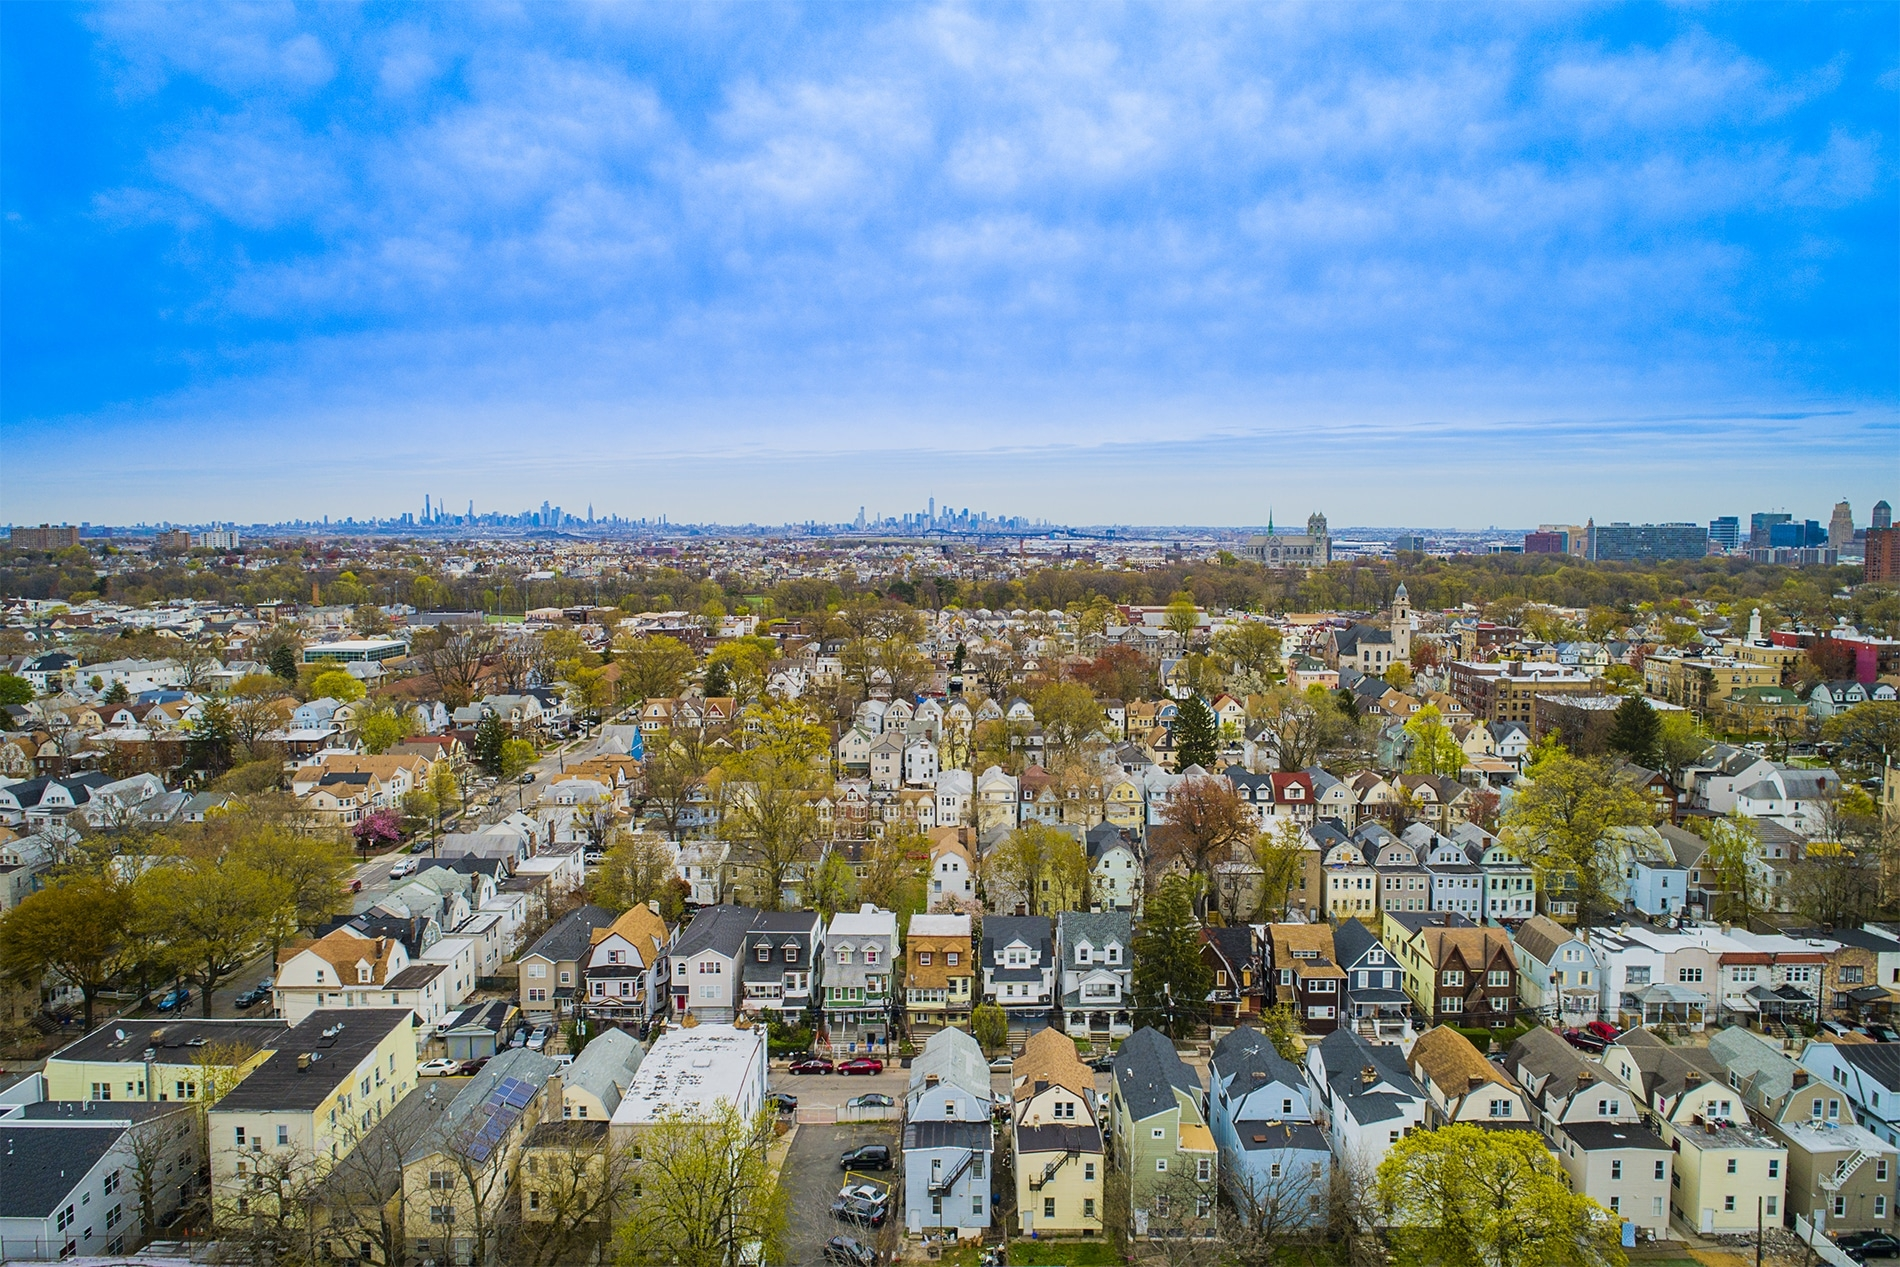 Drone Photograph taken of a neighborhood in North Newark in Newark New Jersey